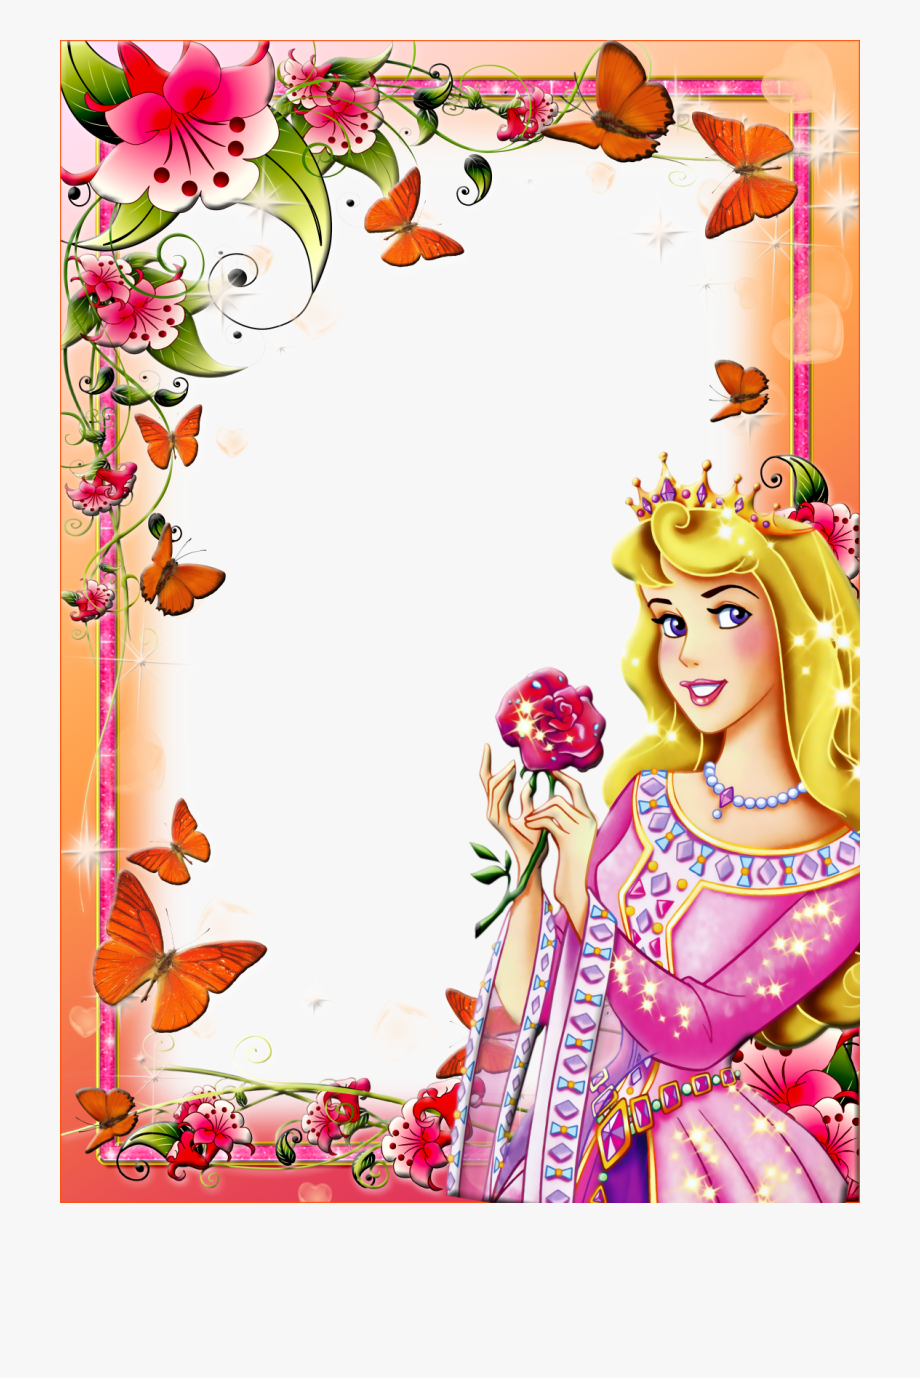 Cartoon Butterfly Border Png Free Cartoon Butterfly Border Png Transparent Images 107921 Pngio